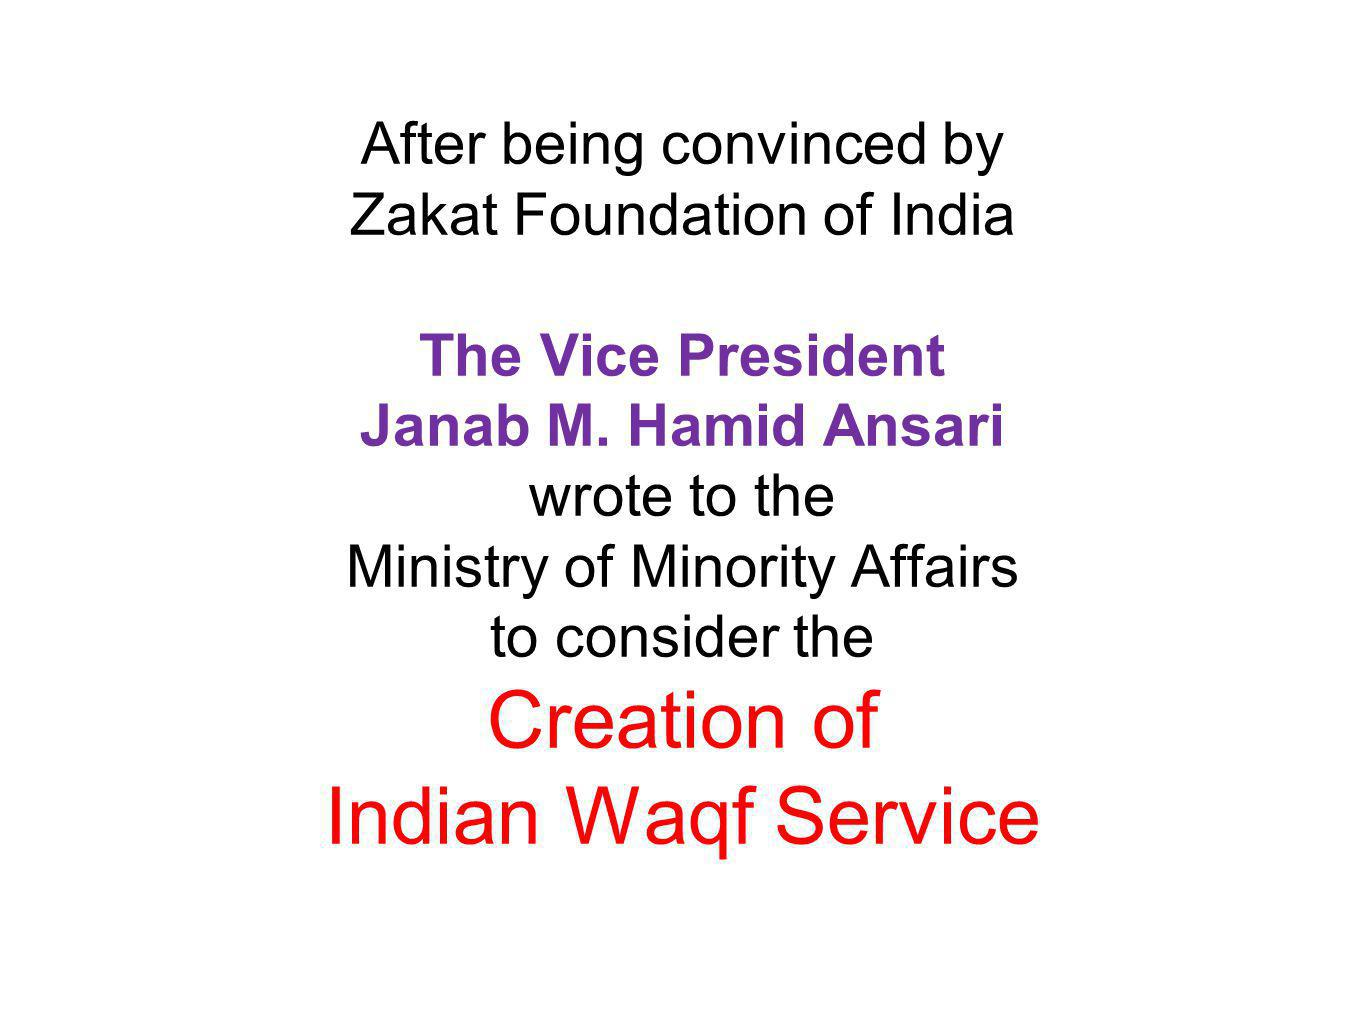 After being convinced by Zakat Foundation of India The Vice President Janab M.